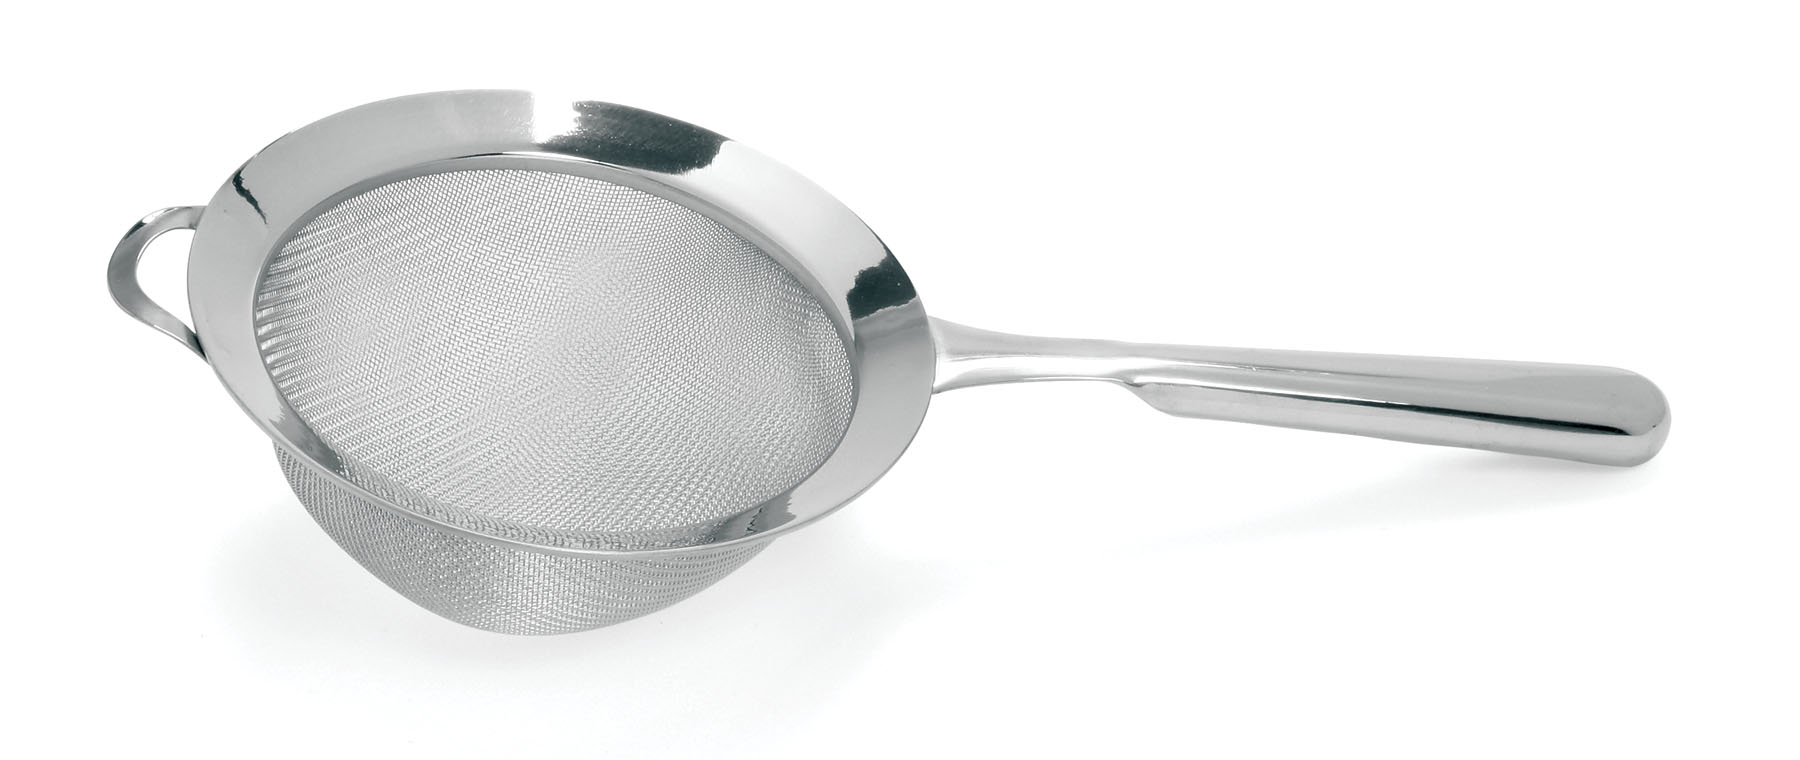 Norpro stainless steel quot double mesh pasta strainer